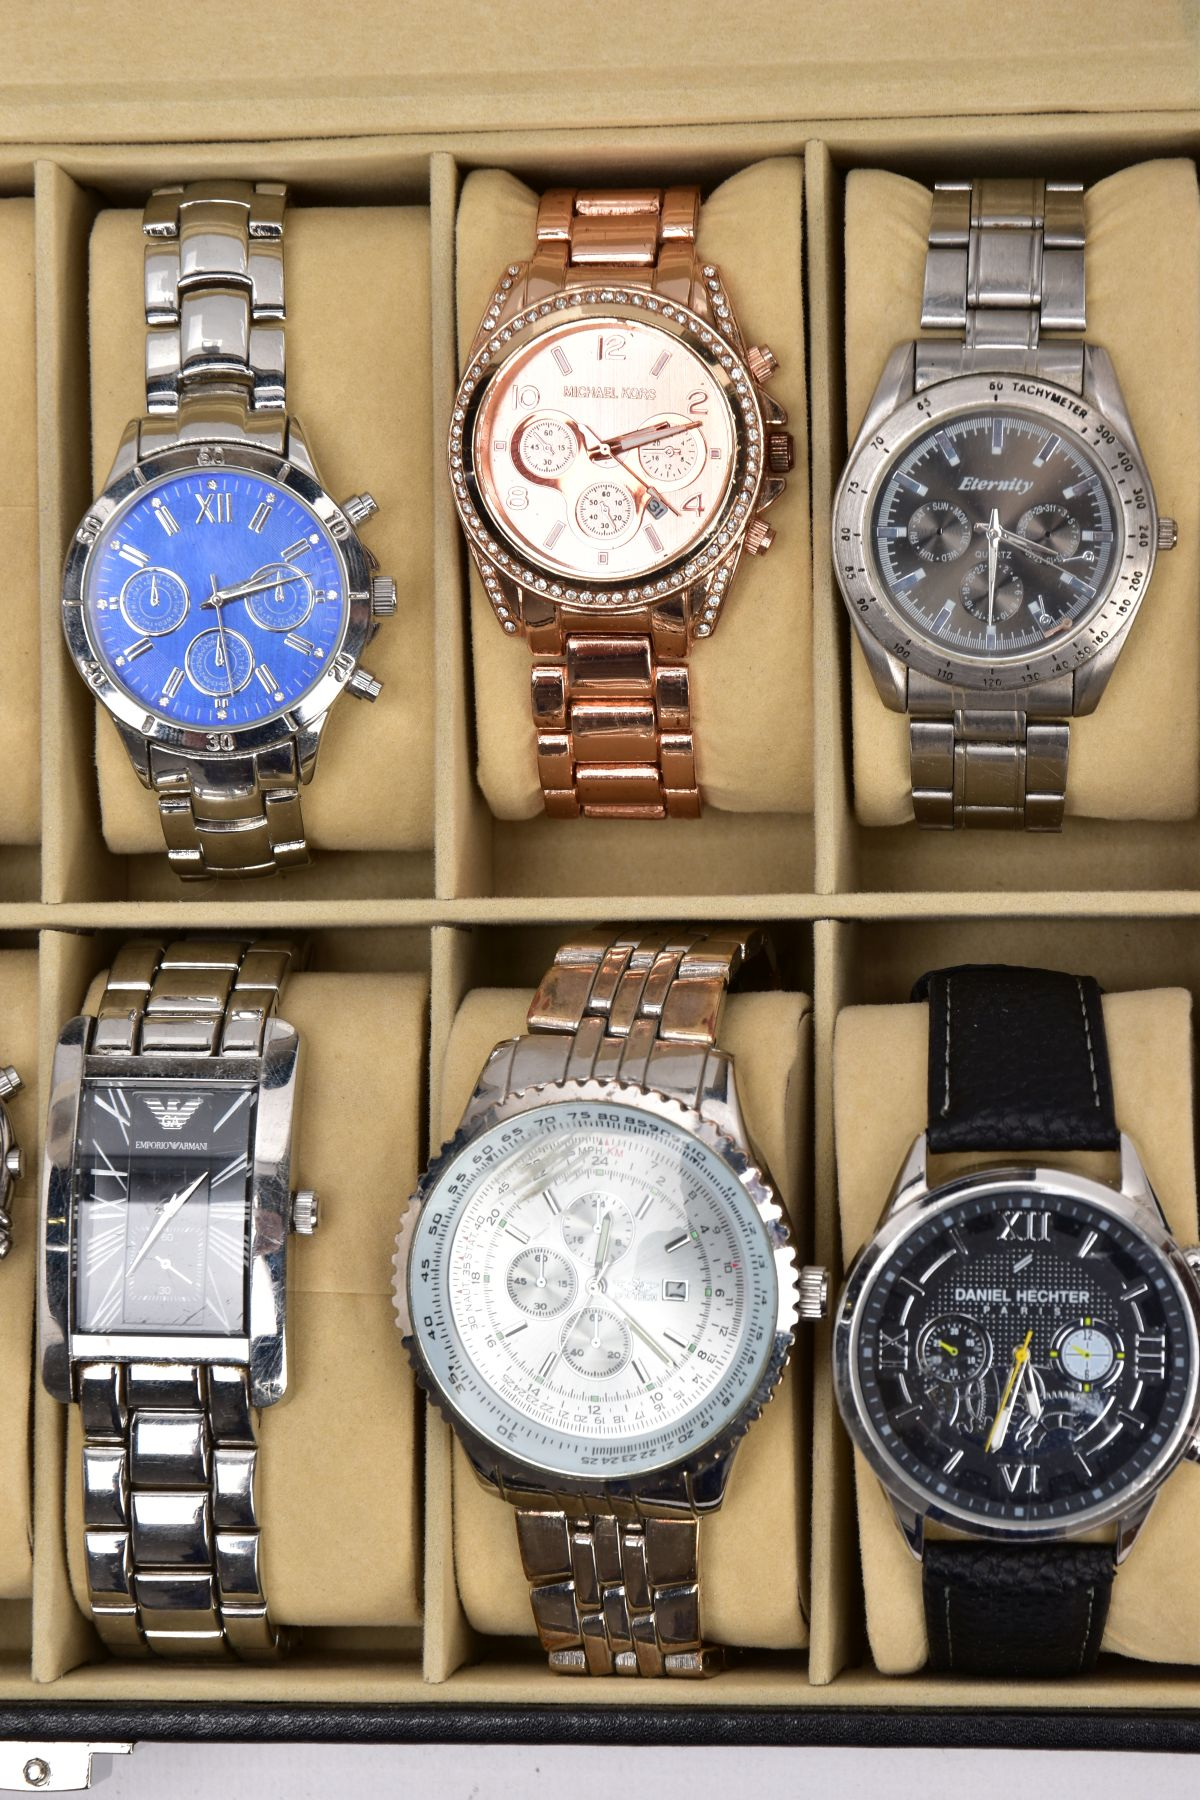 A WATCH DISPLAY CASE WITH WATCHES, a black and glass panelled watch display case with twelve watches - Image 2 of 4